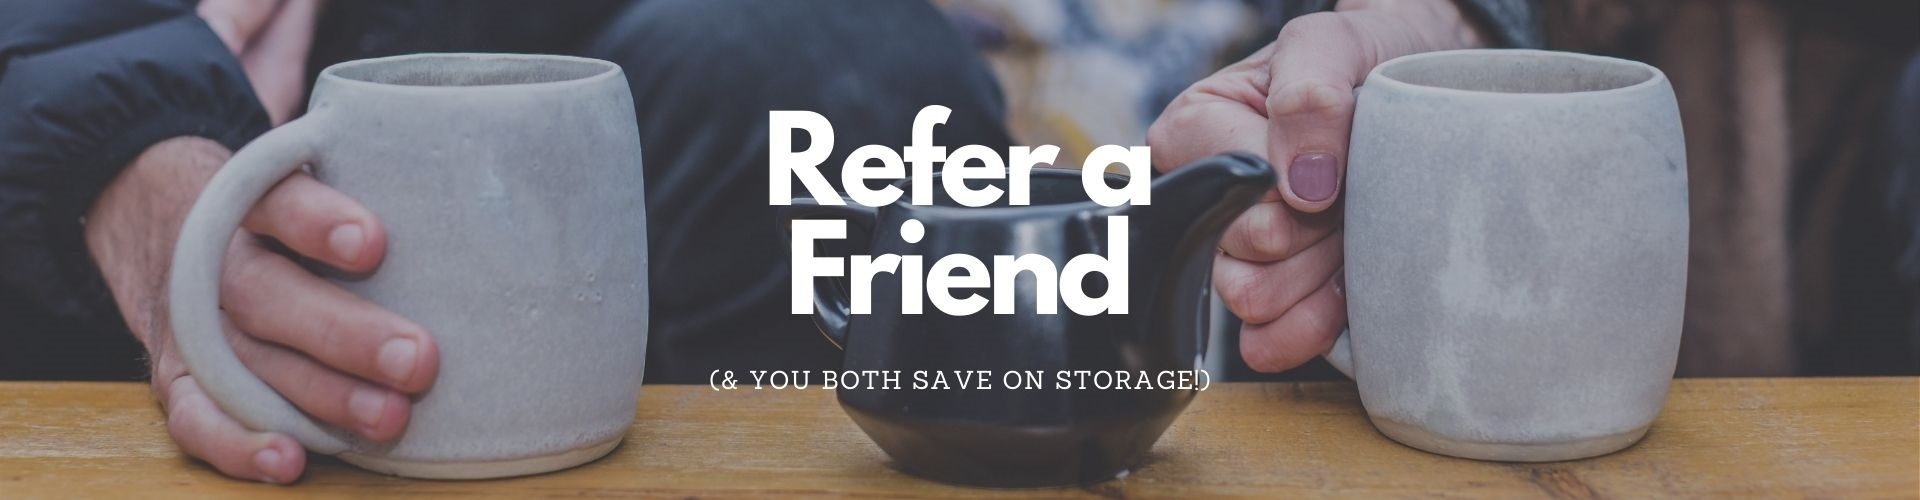 Refer a friend storage